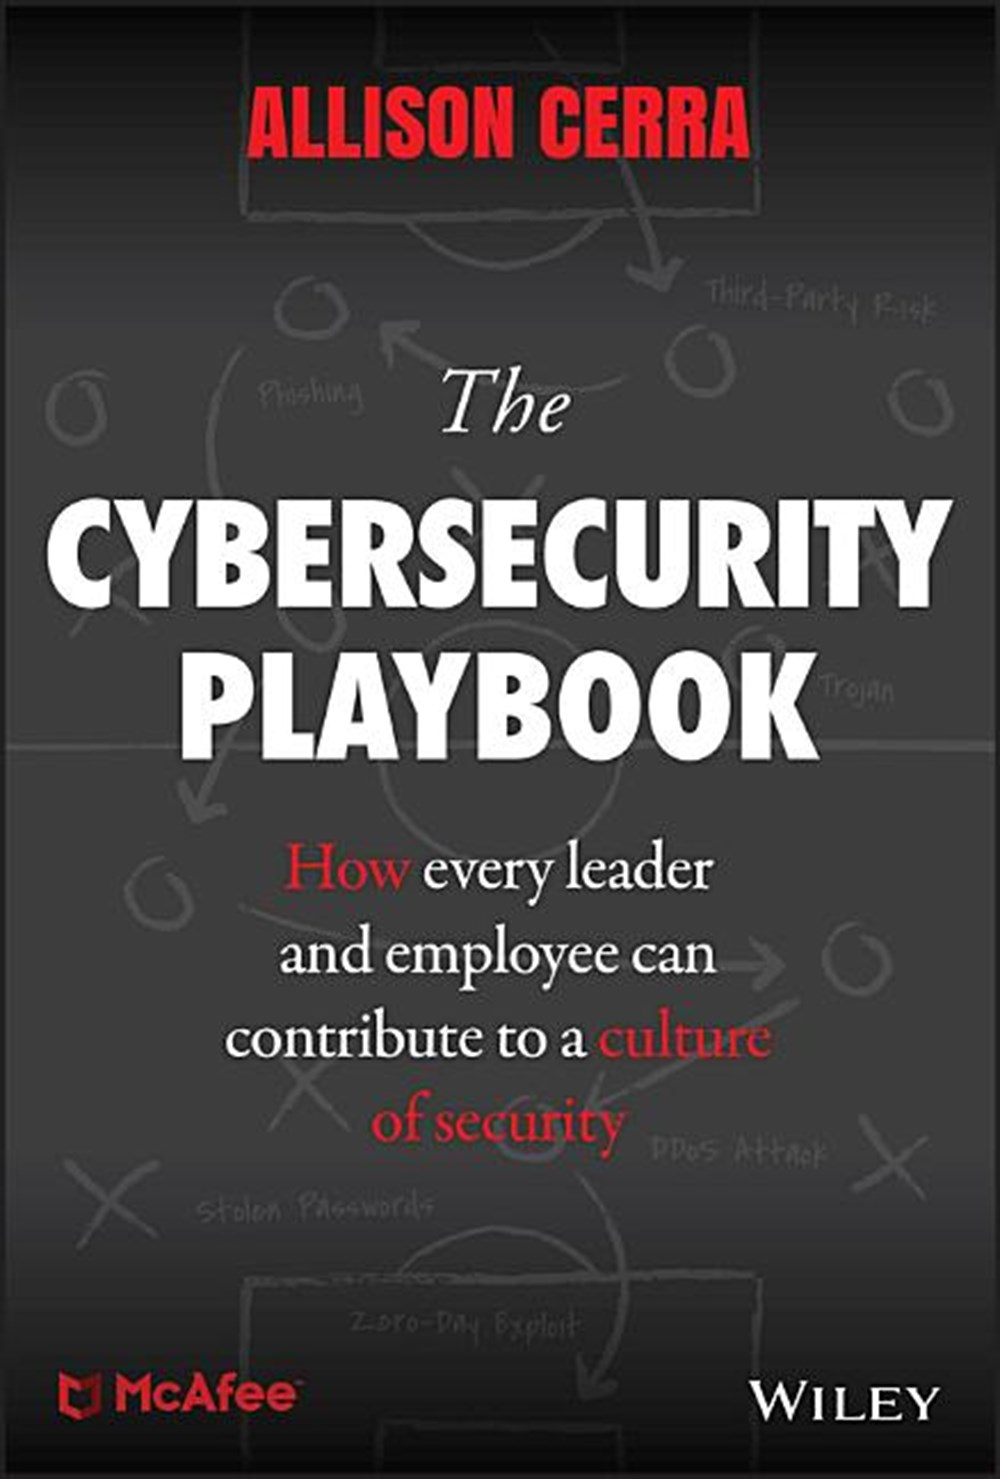 Cybersecurity Playbook: How Every Leader and Employee Can Contribute to a Culture of Security